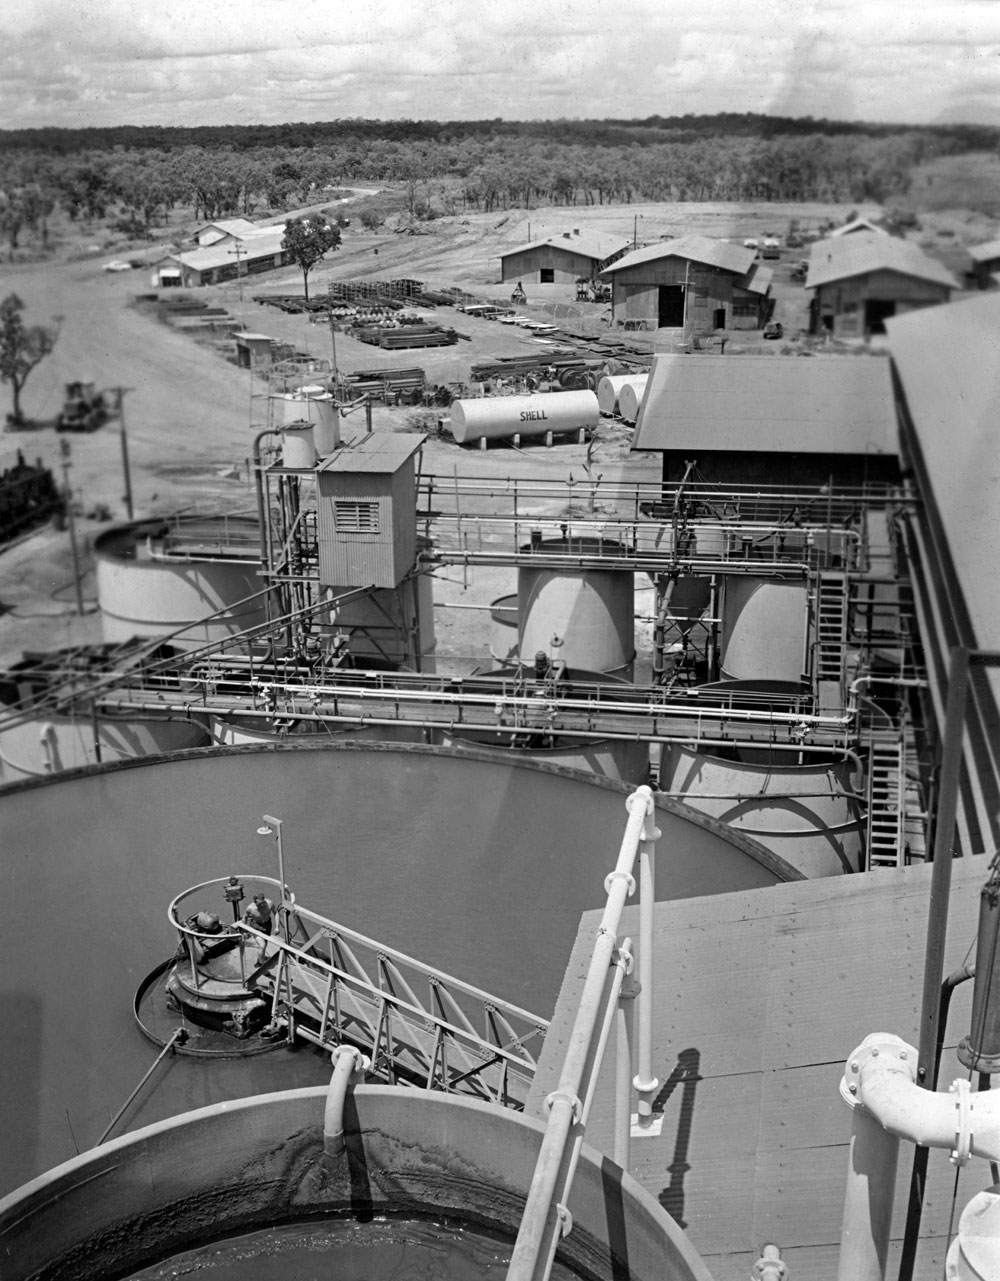 Treatment plant area, Rum Jungle (1958). National Archives of Australia: A1200, L25504